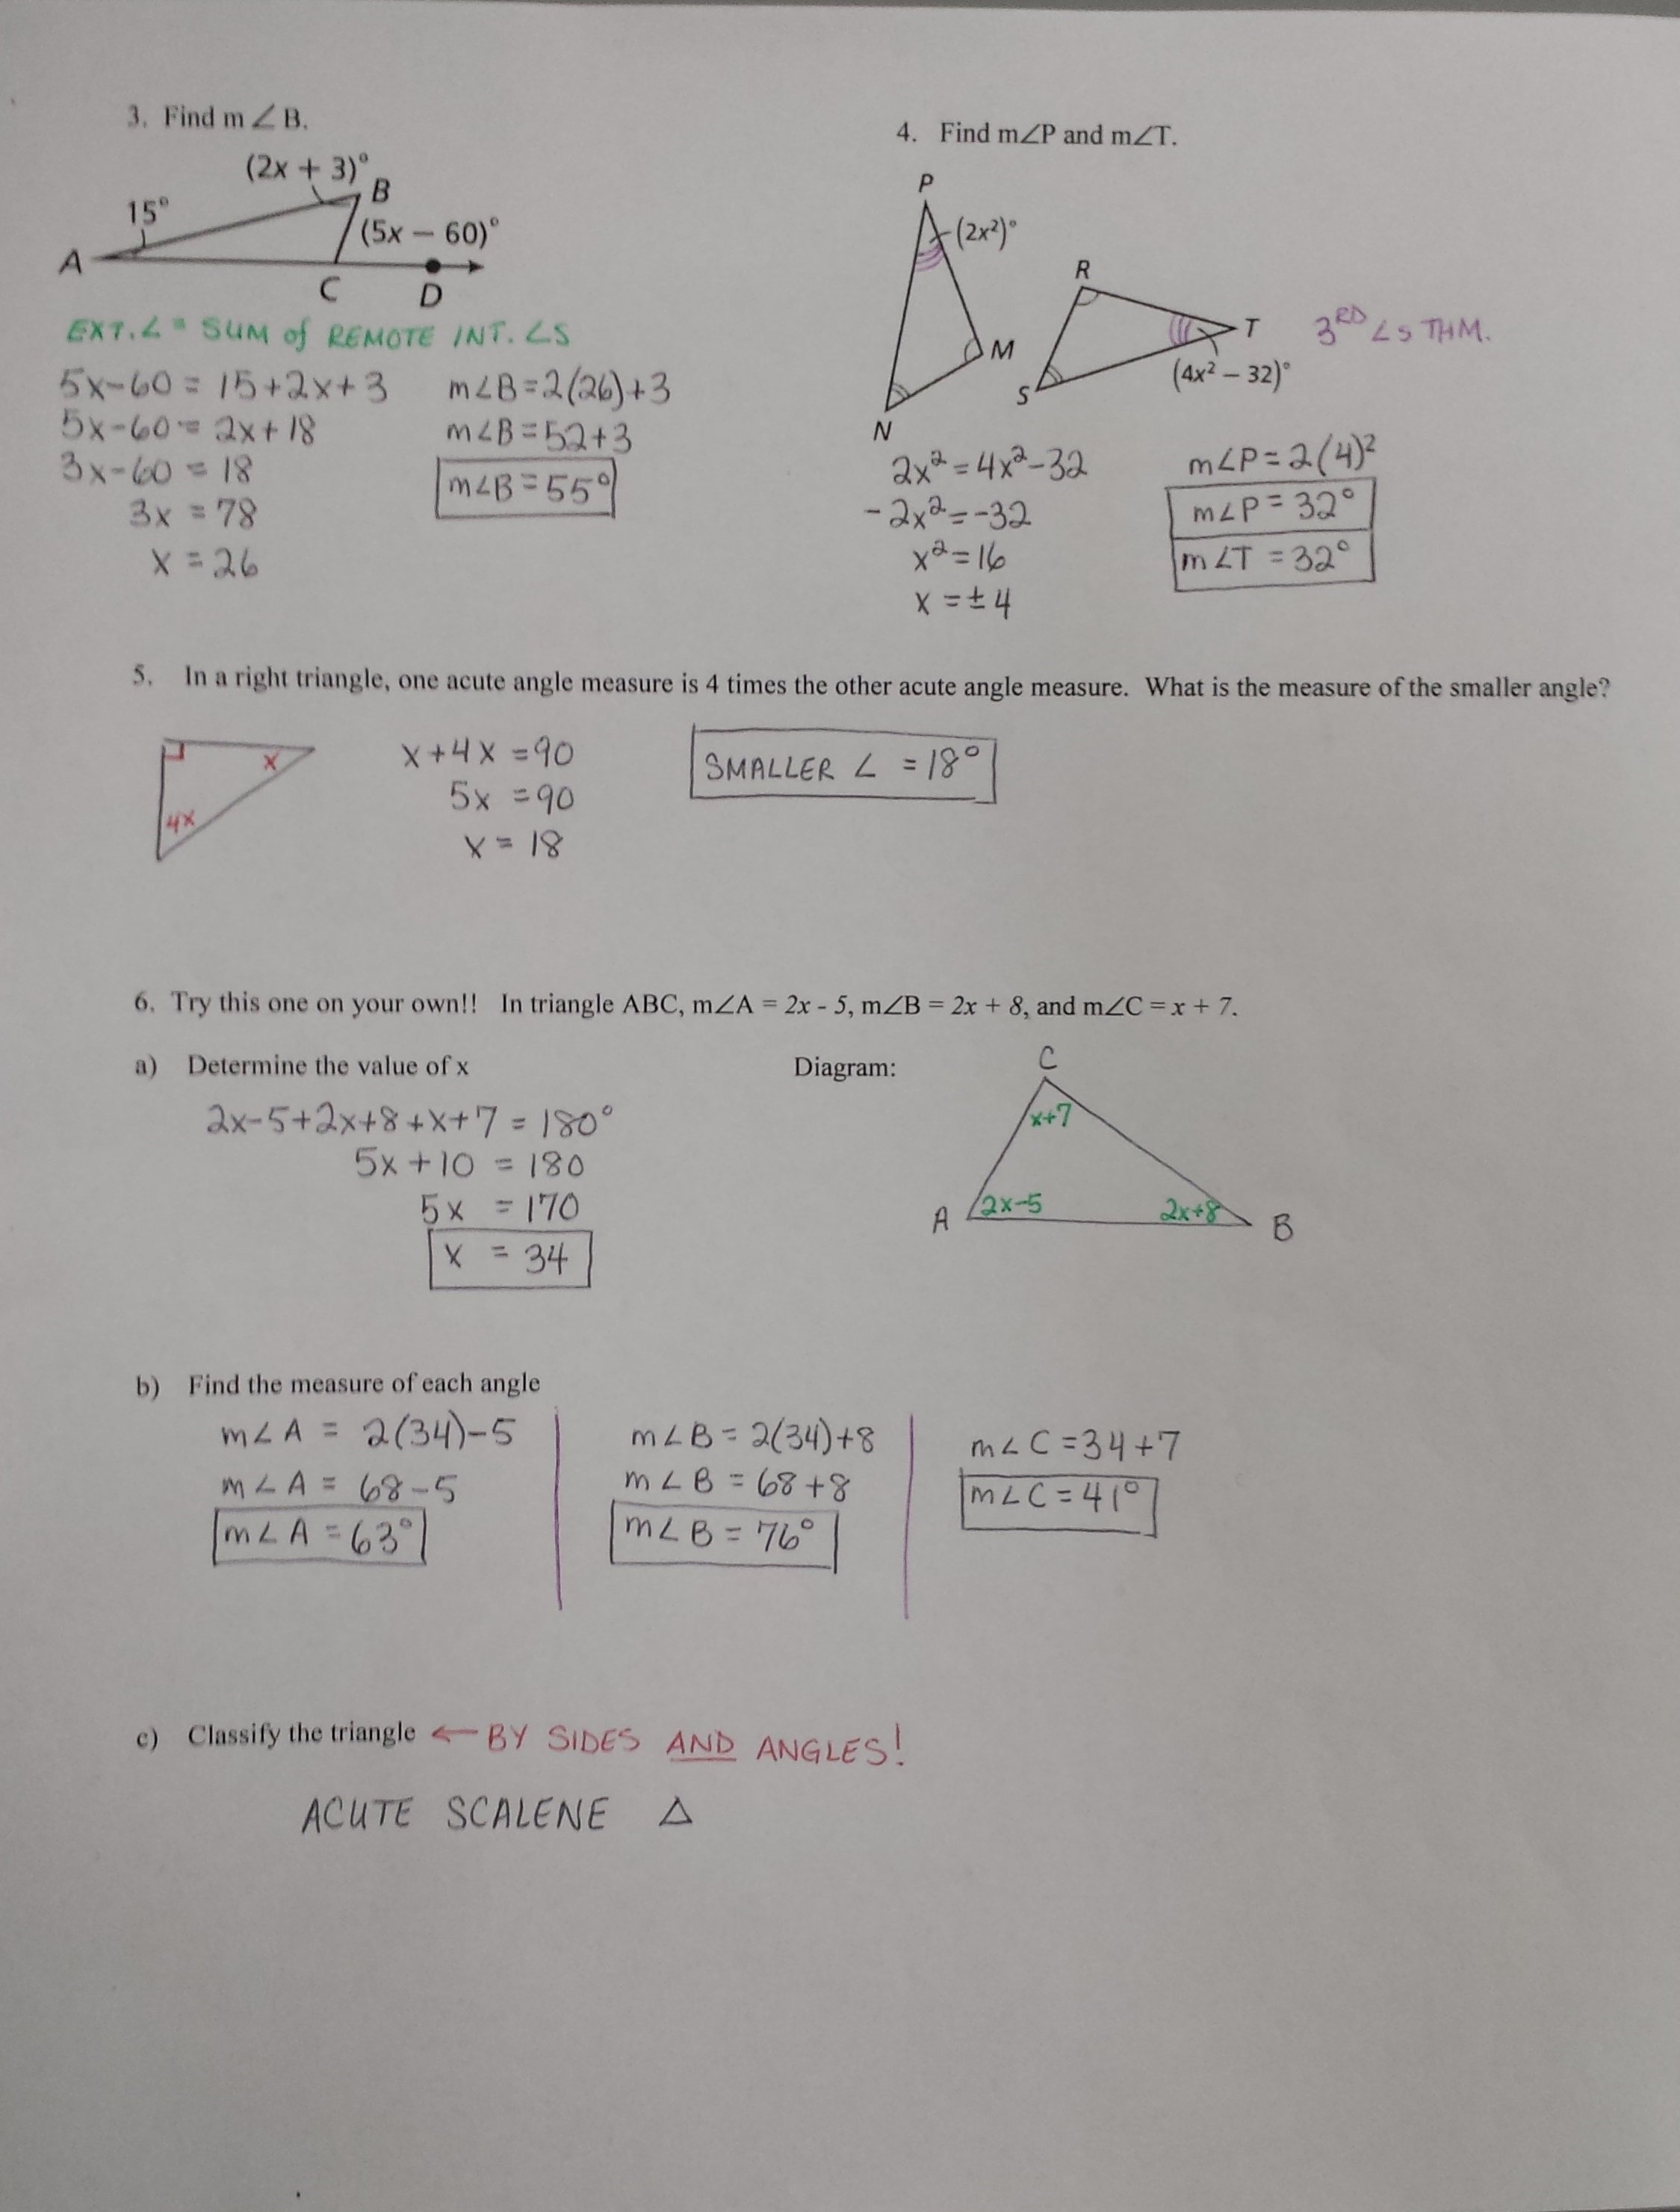 4 2 Practice Angles Of Triangles Worksheet Answers  Yooob Along With 4 2 Practice Angles Of Triangles Worksheet Answers